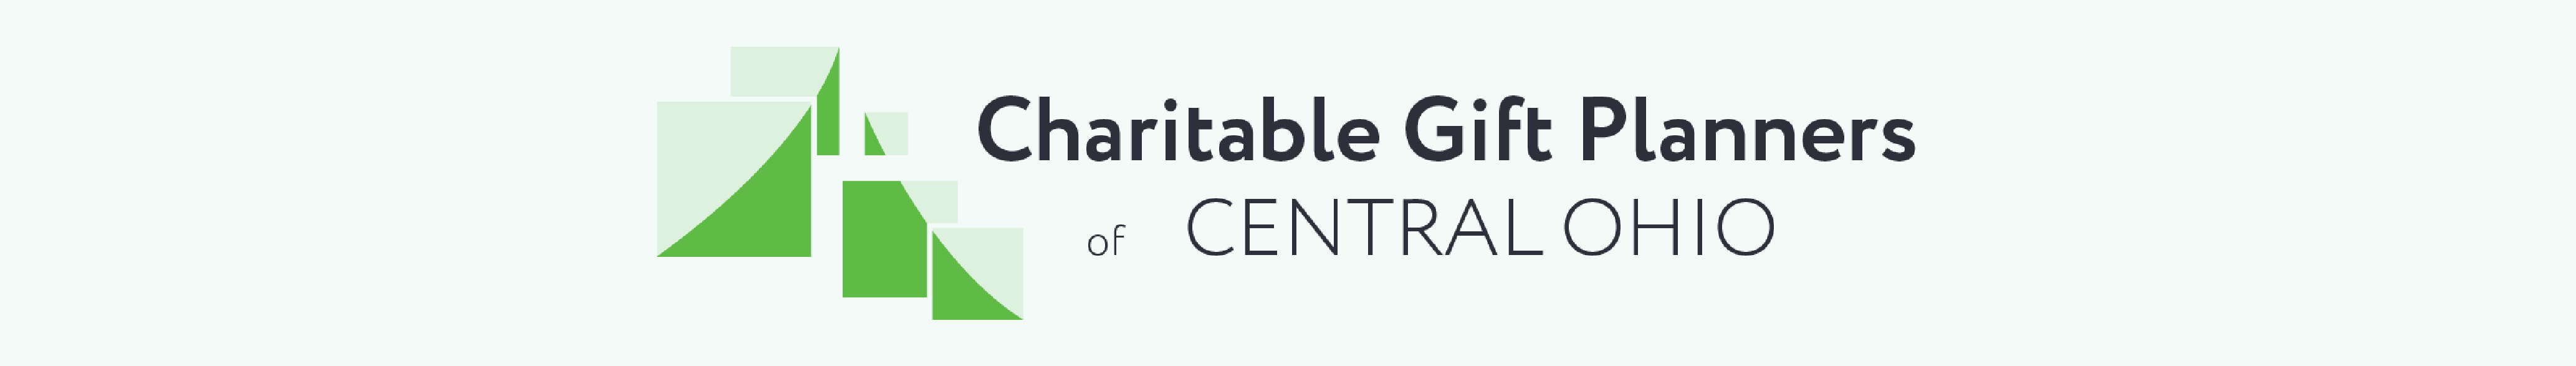 Charitable Gift Planners of Central Ohio Logo